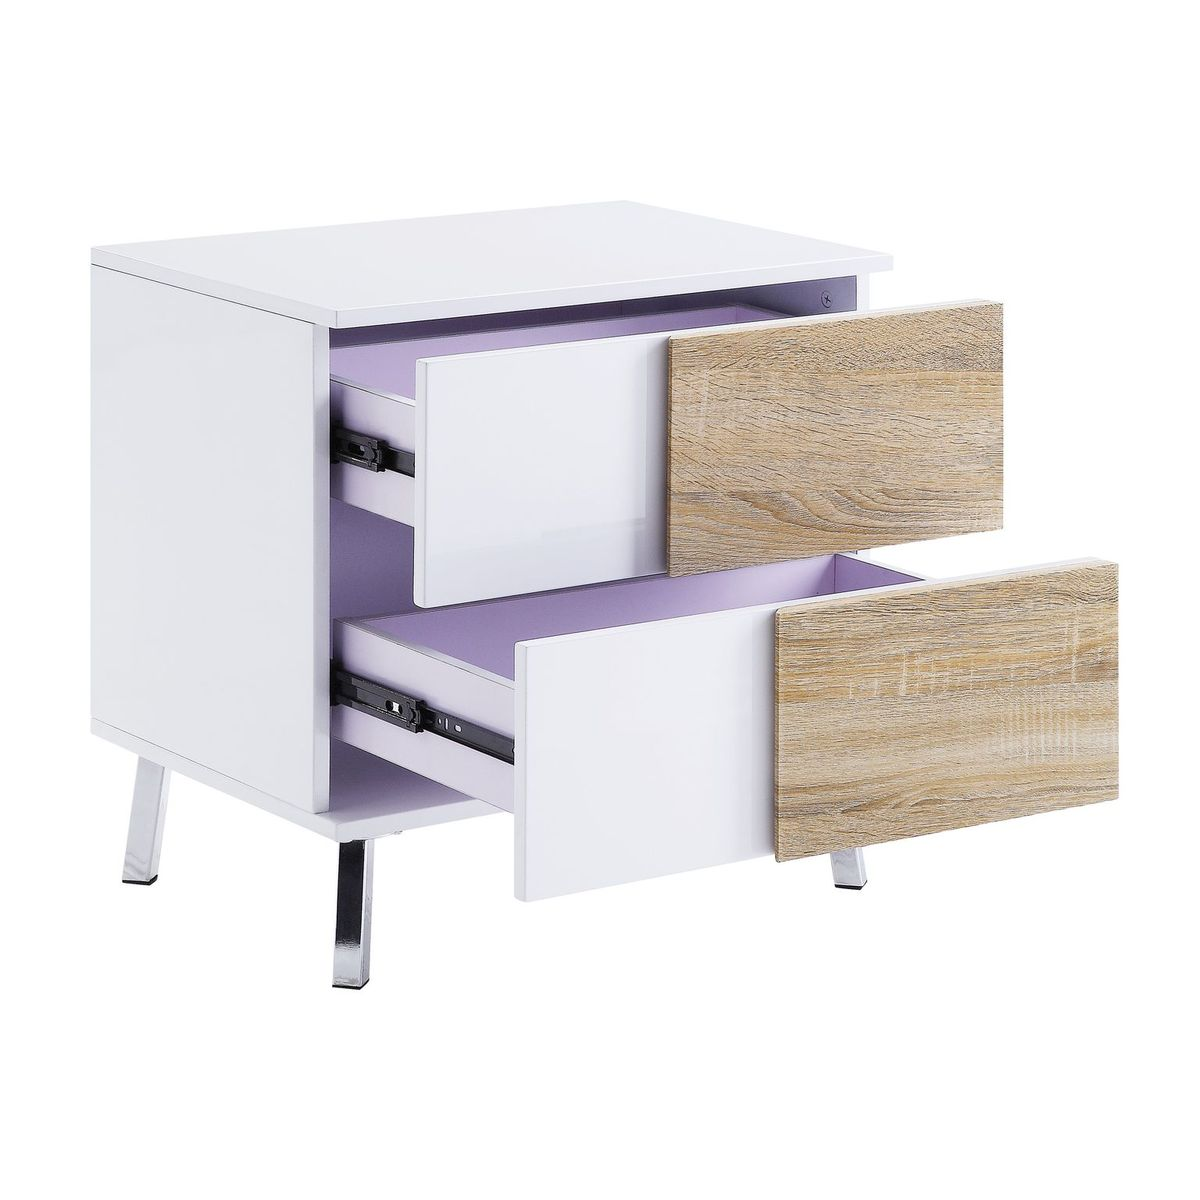 Lavender Verux End Table With 2 Drawers White High Gloss BH84932